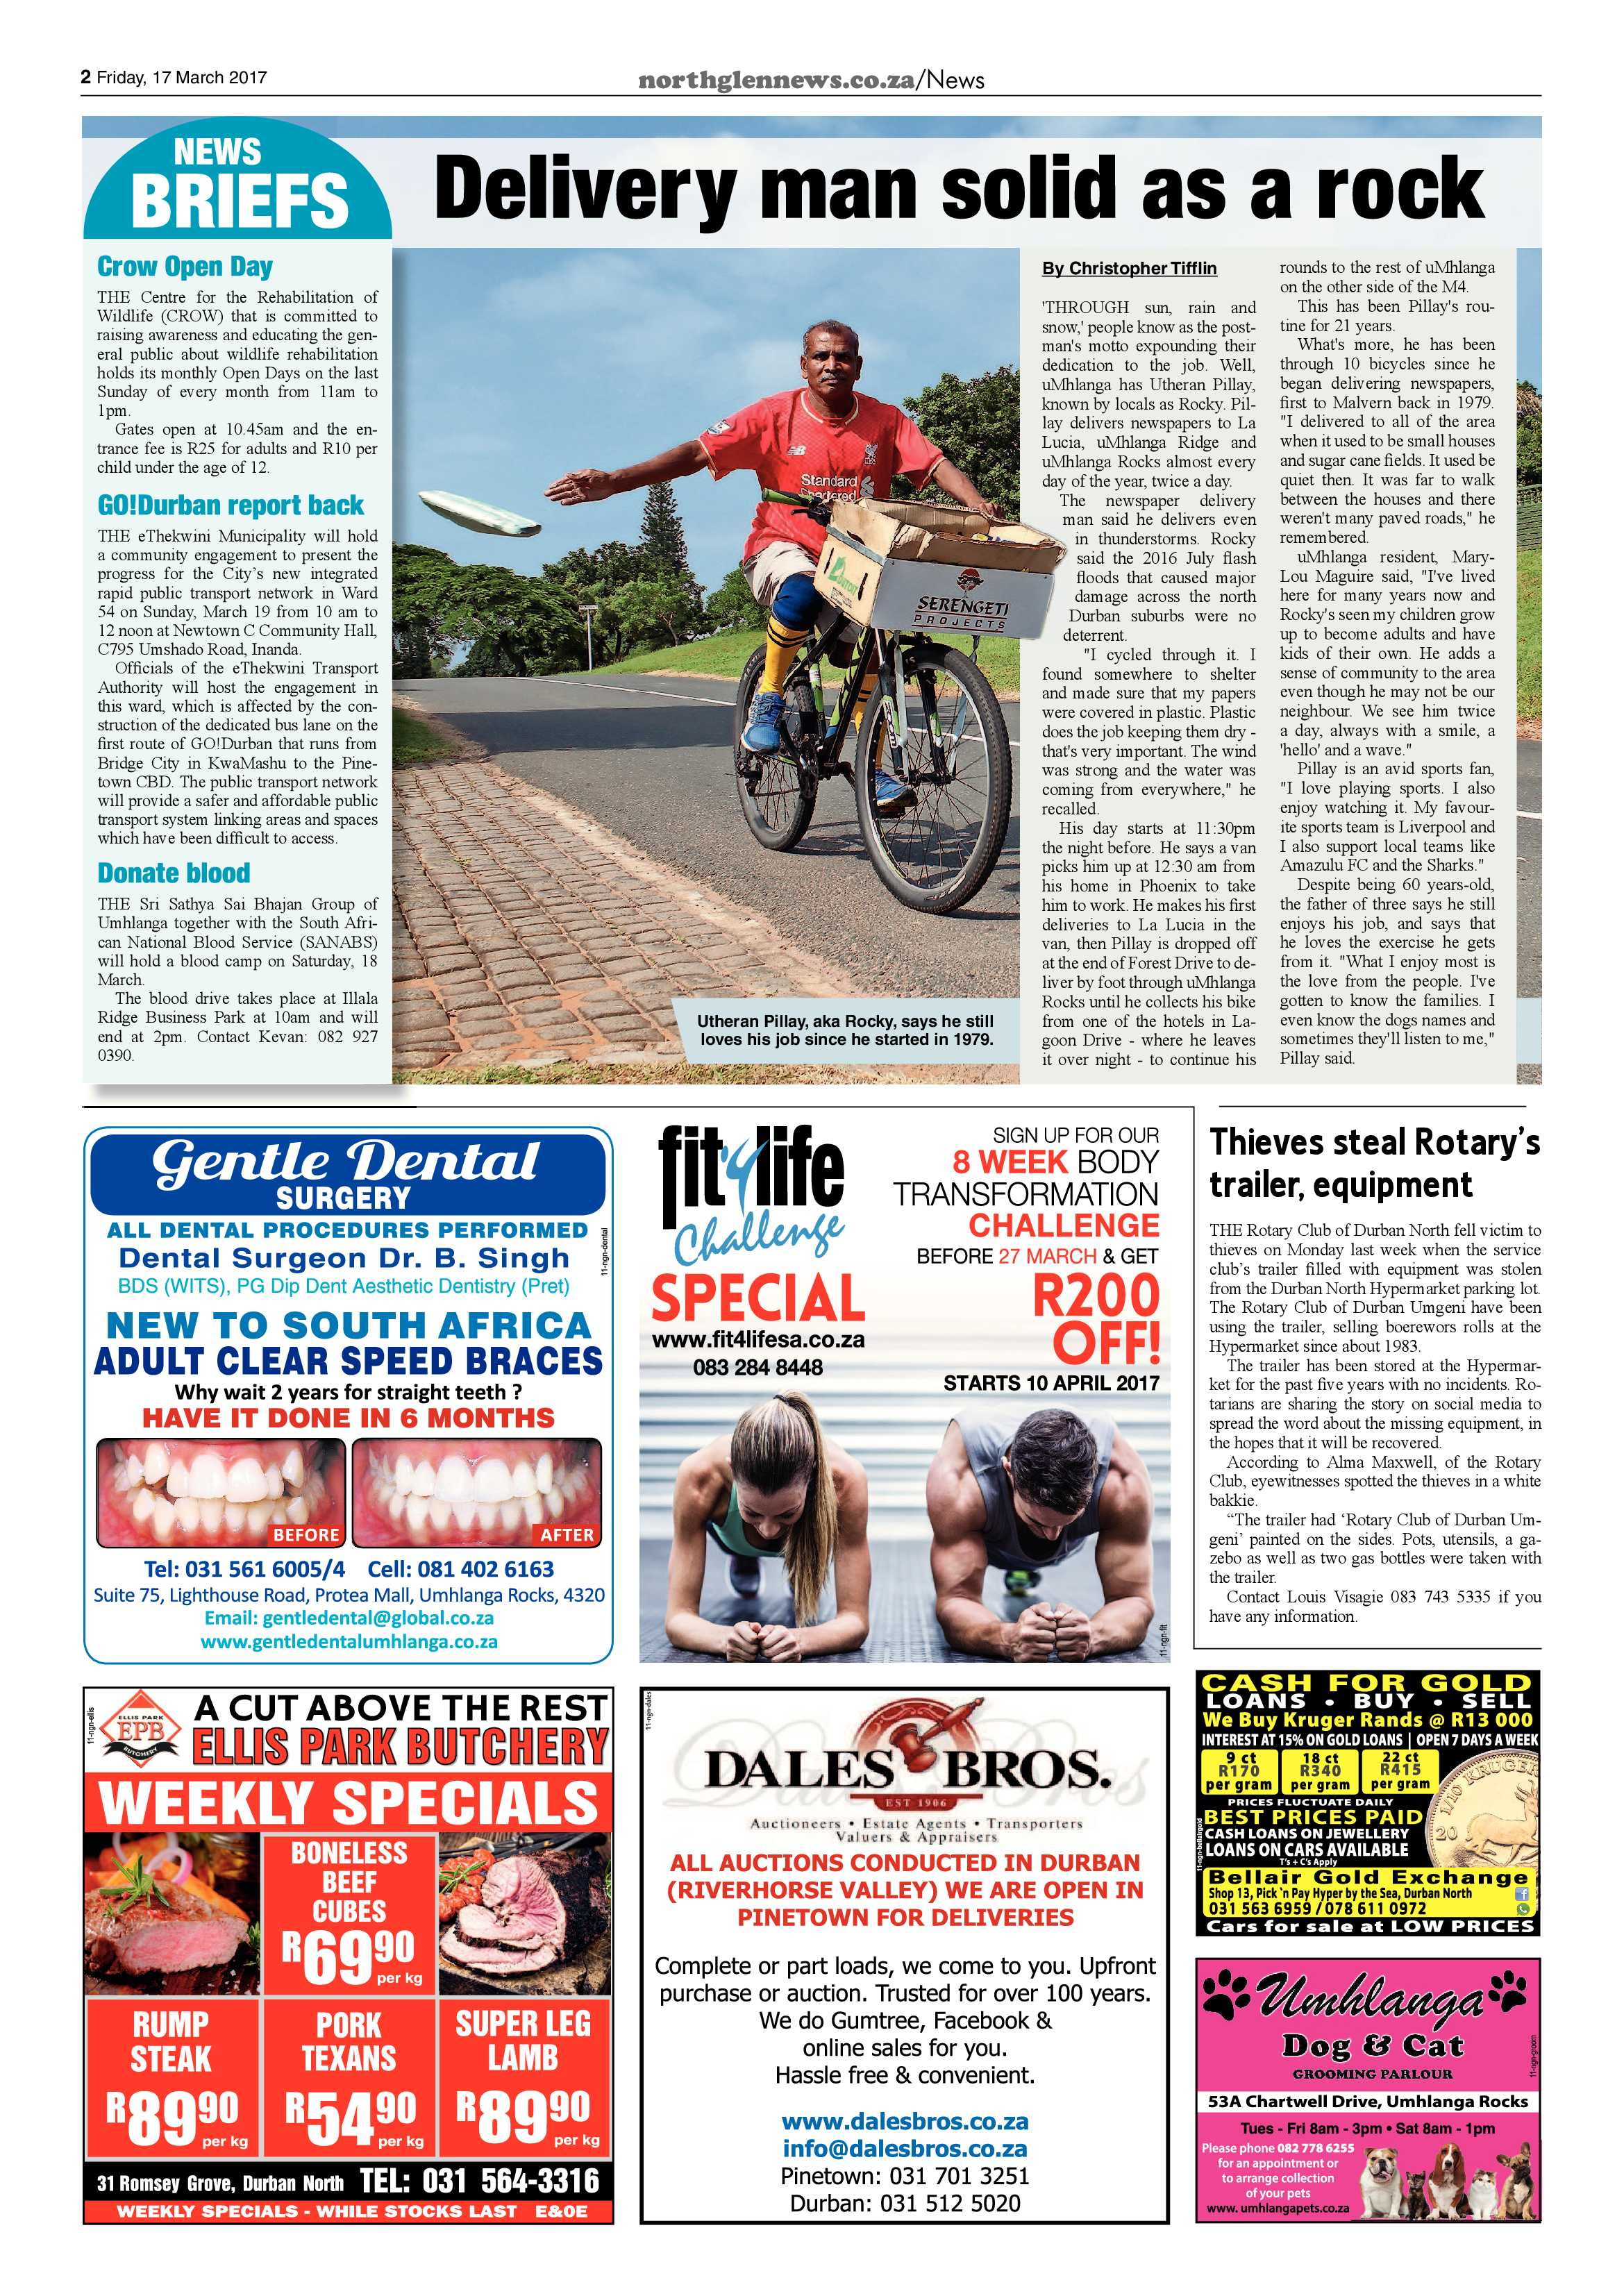 northglen-news-17-march-2017-epapers-page-2